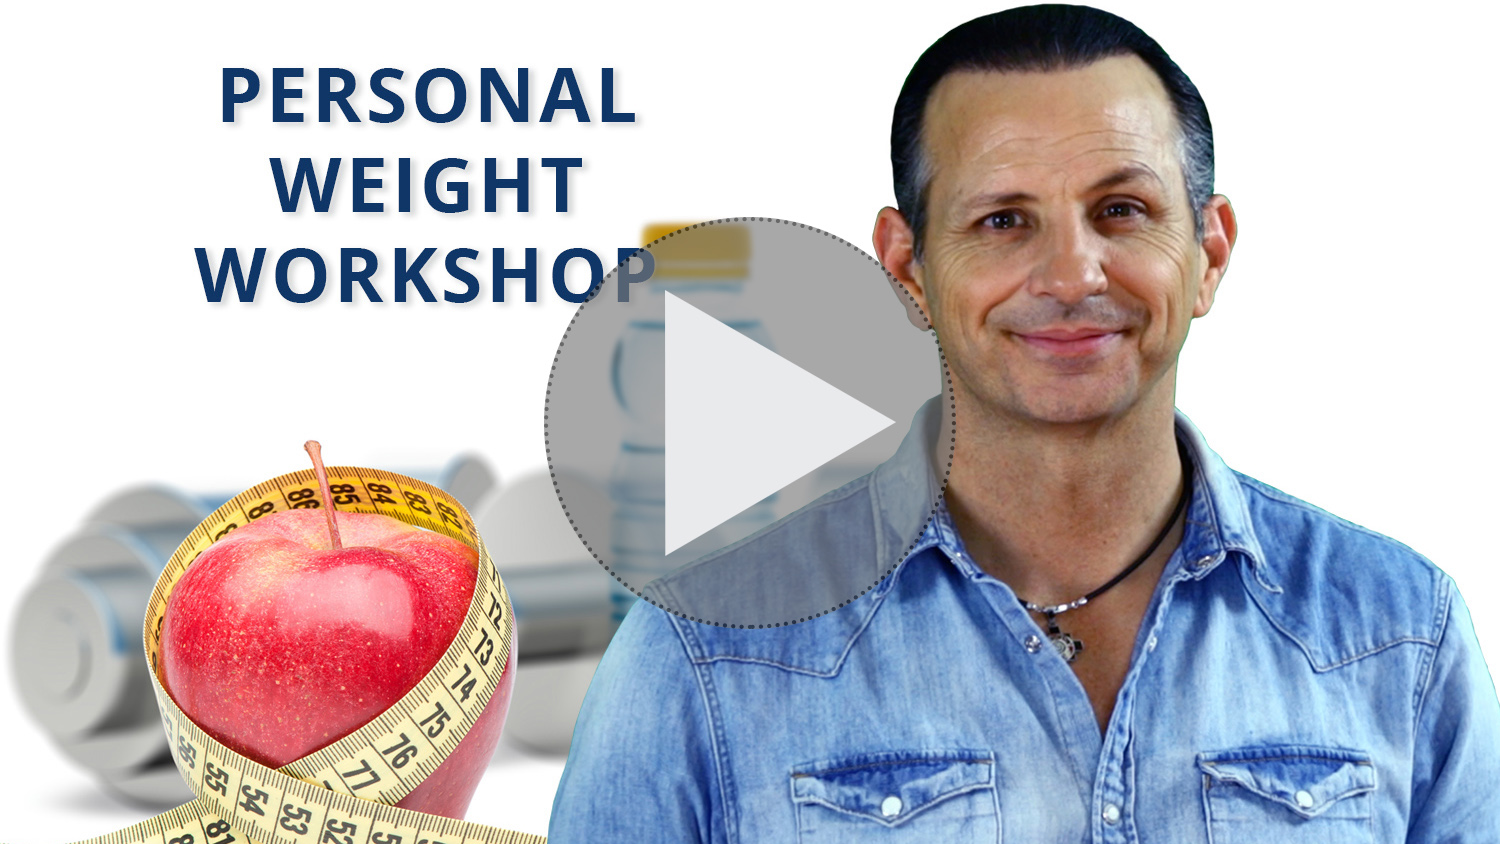 FREE Personal Weight Workshop Video 1 by Travis Fox